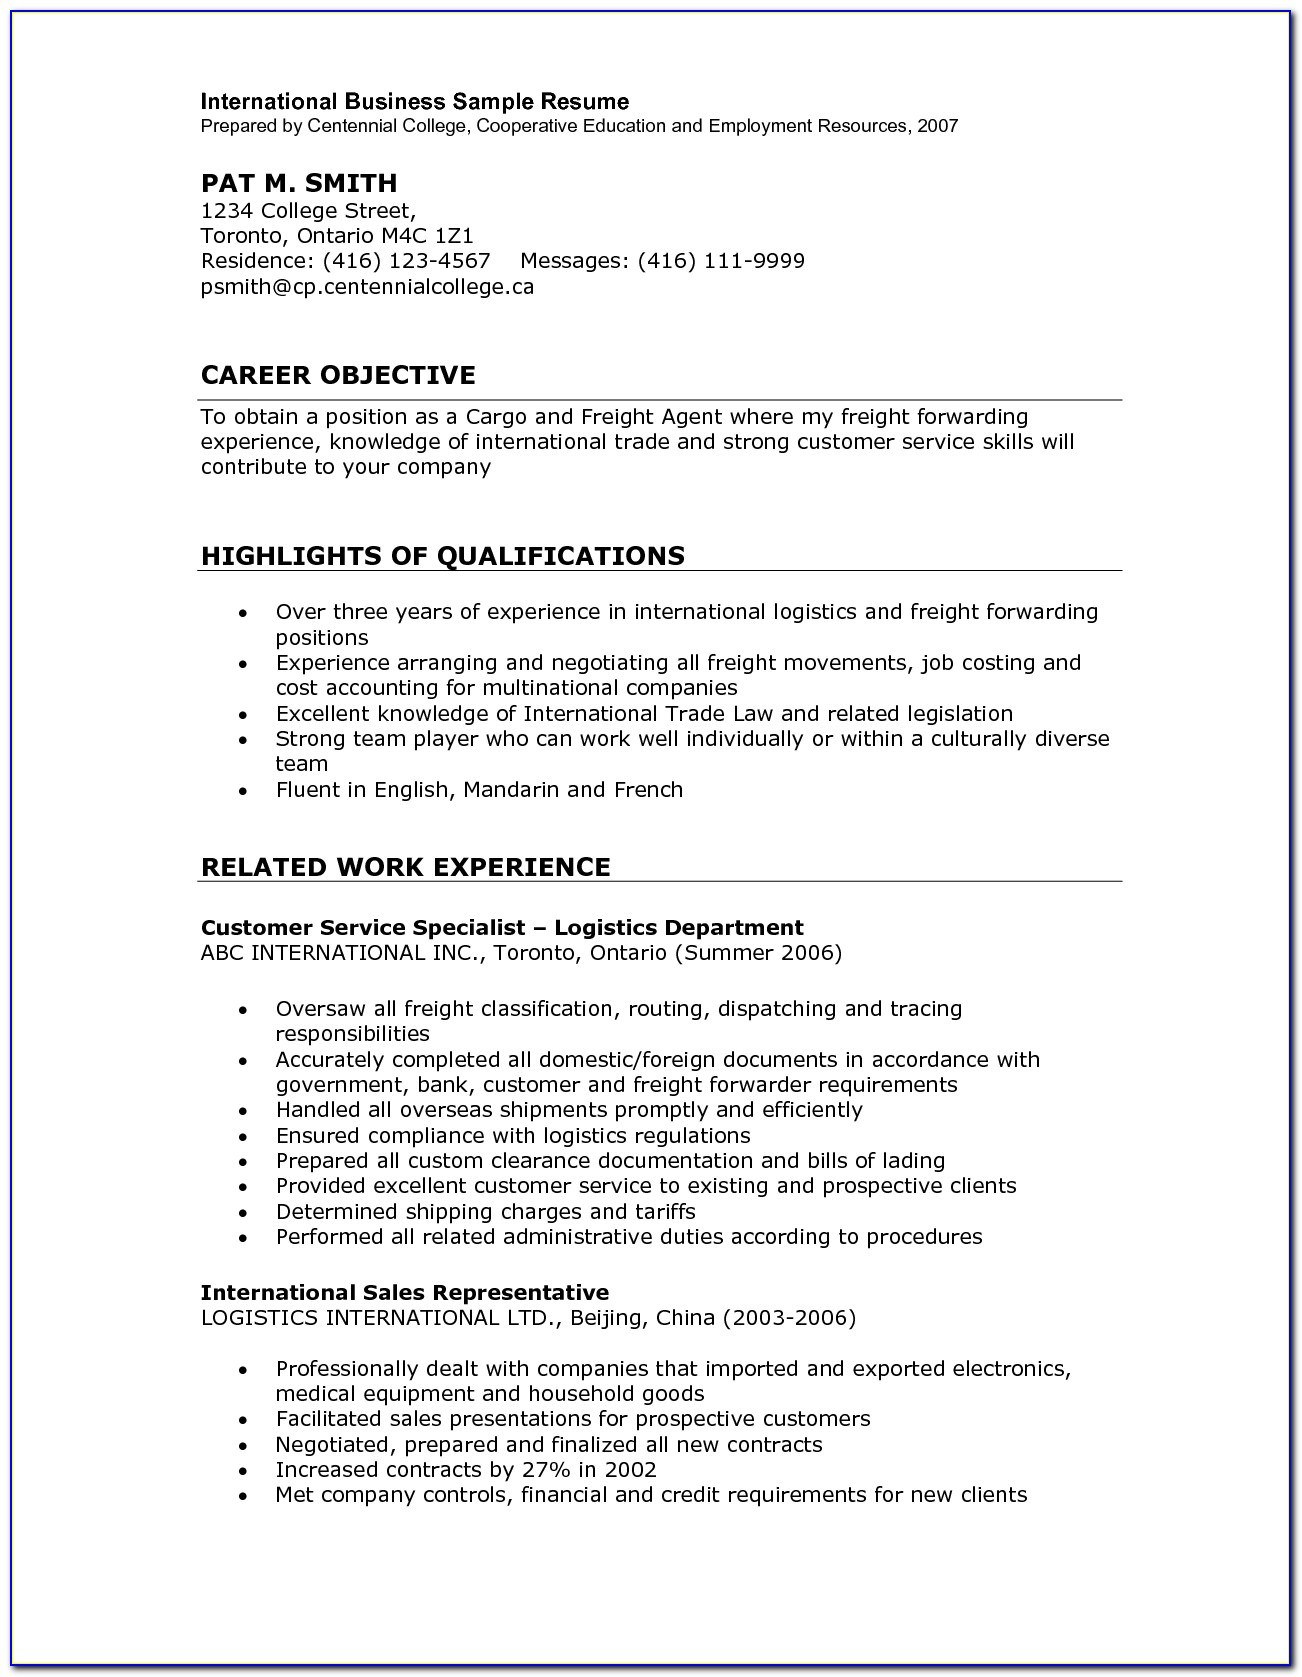 resume objective for freight forwarding company vincegray2014 github experience mental Resume Resume For Freight Forwarding Company